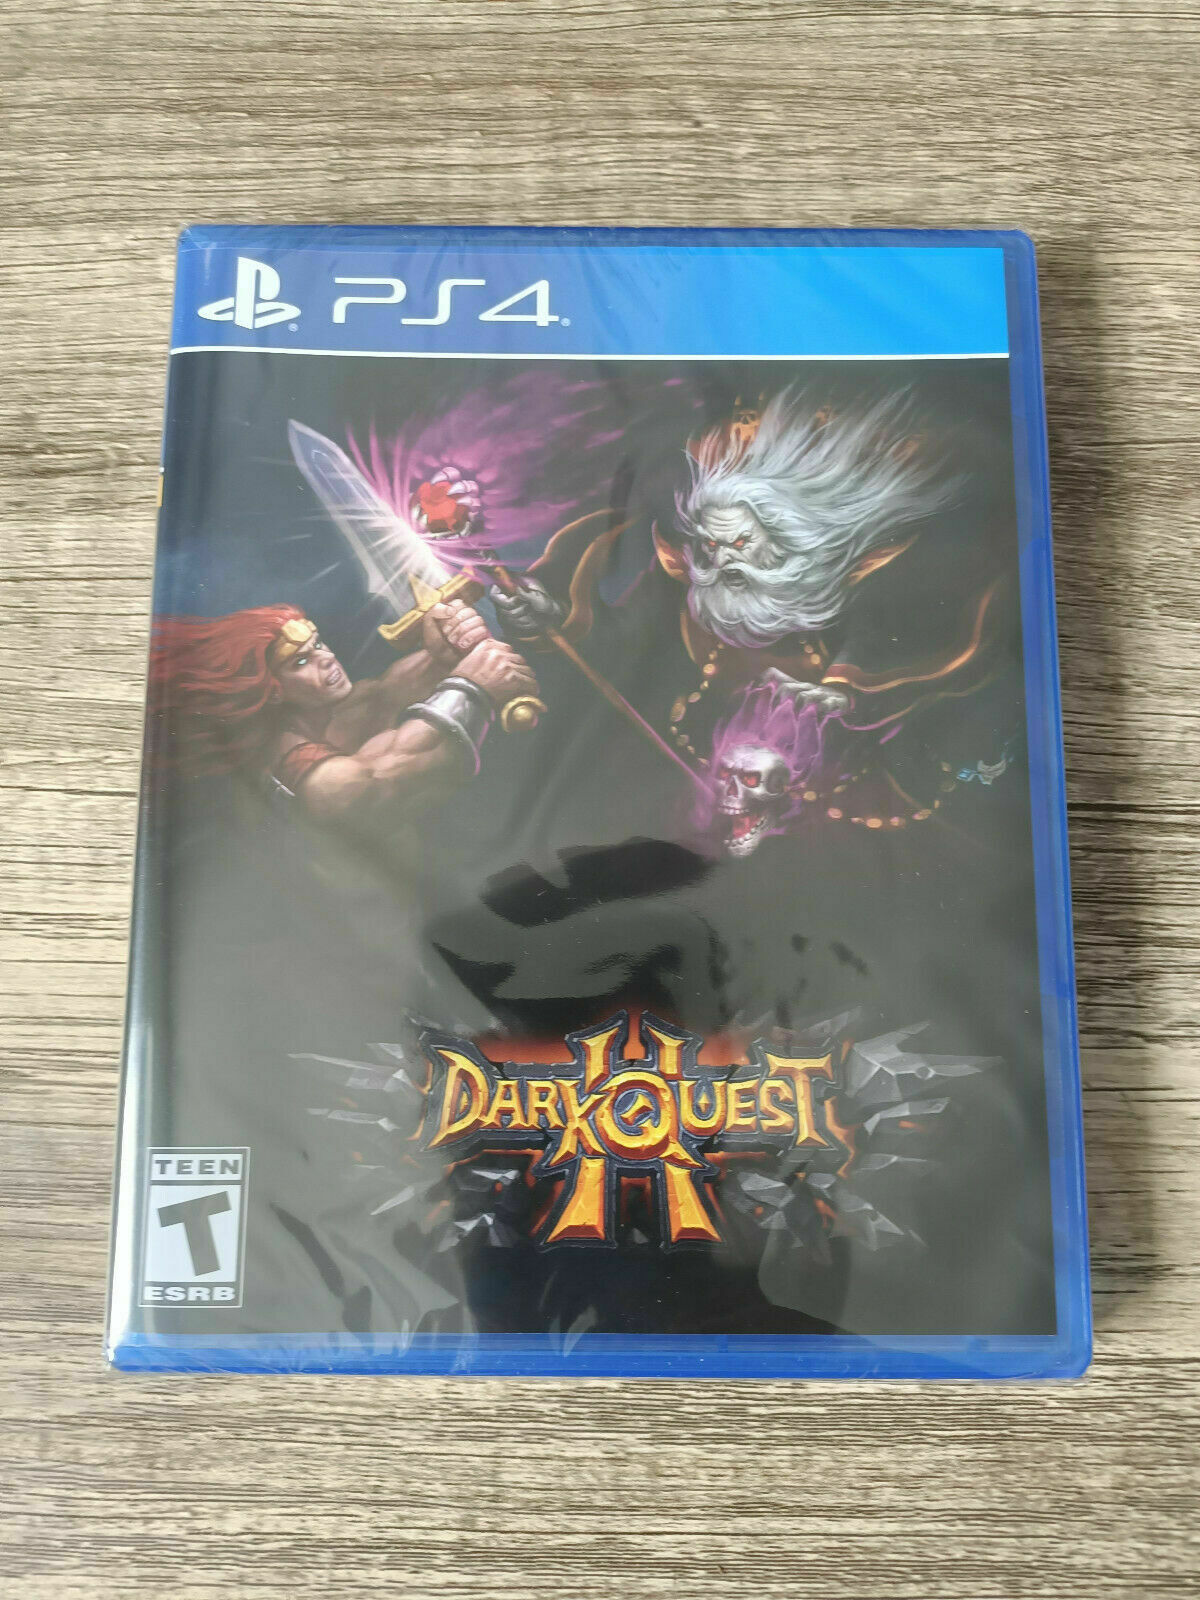 Dark Quest 2 - Playstation 4 PS4 - Limited Run Games #334 - NEW